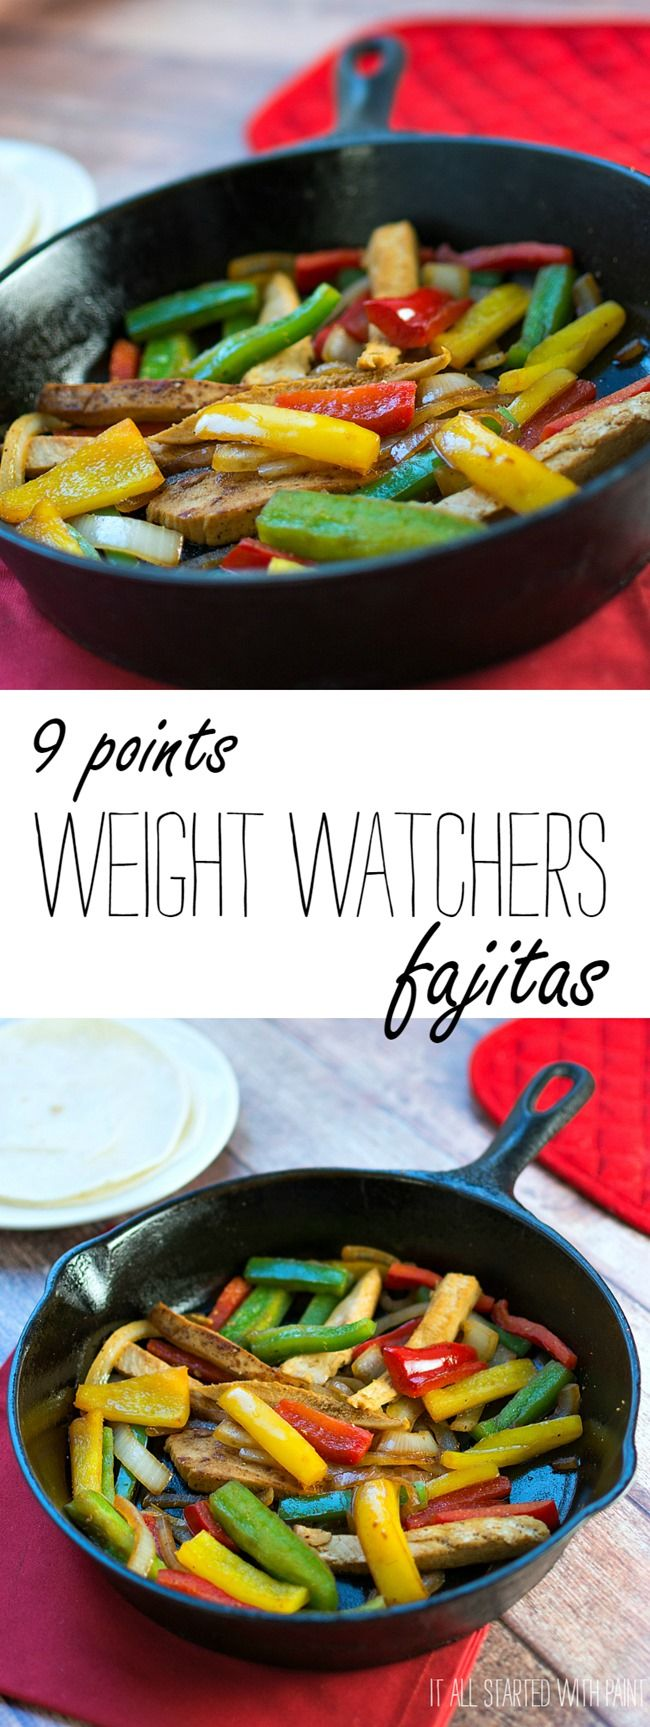 25 best images about weight watchers on pinterest broccoli salads chicken livers and spicy. Black Bedroom Furniture Sets. Home Design Ideas